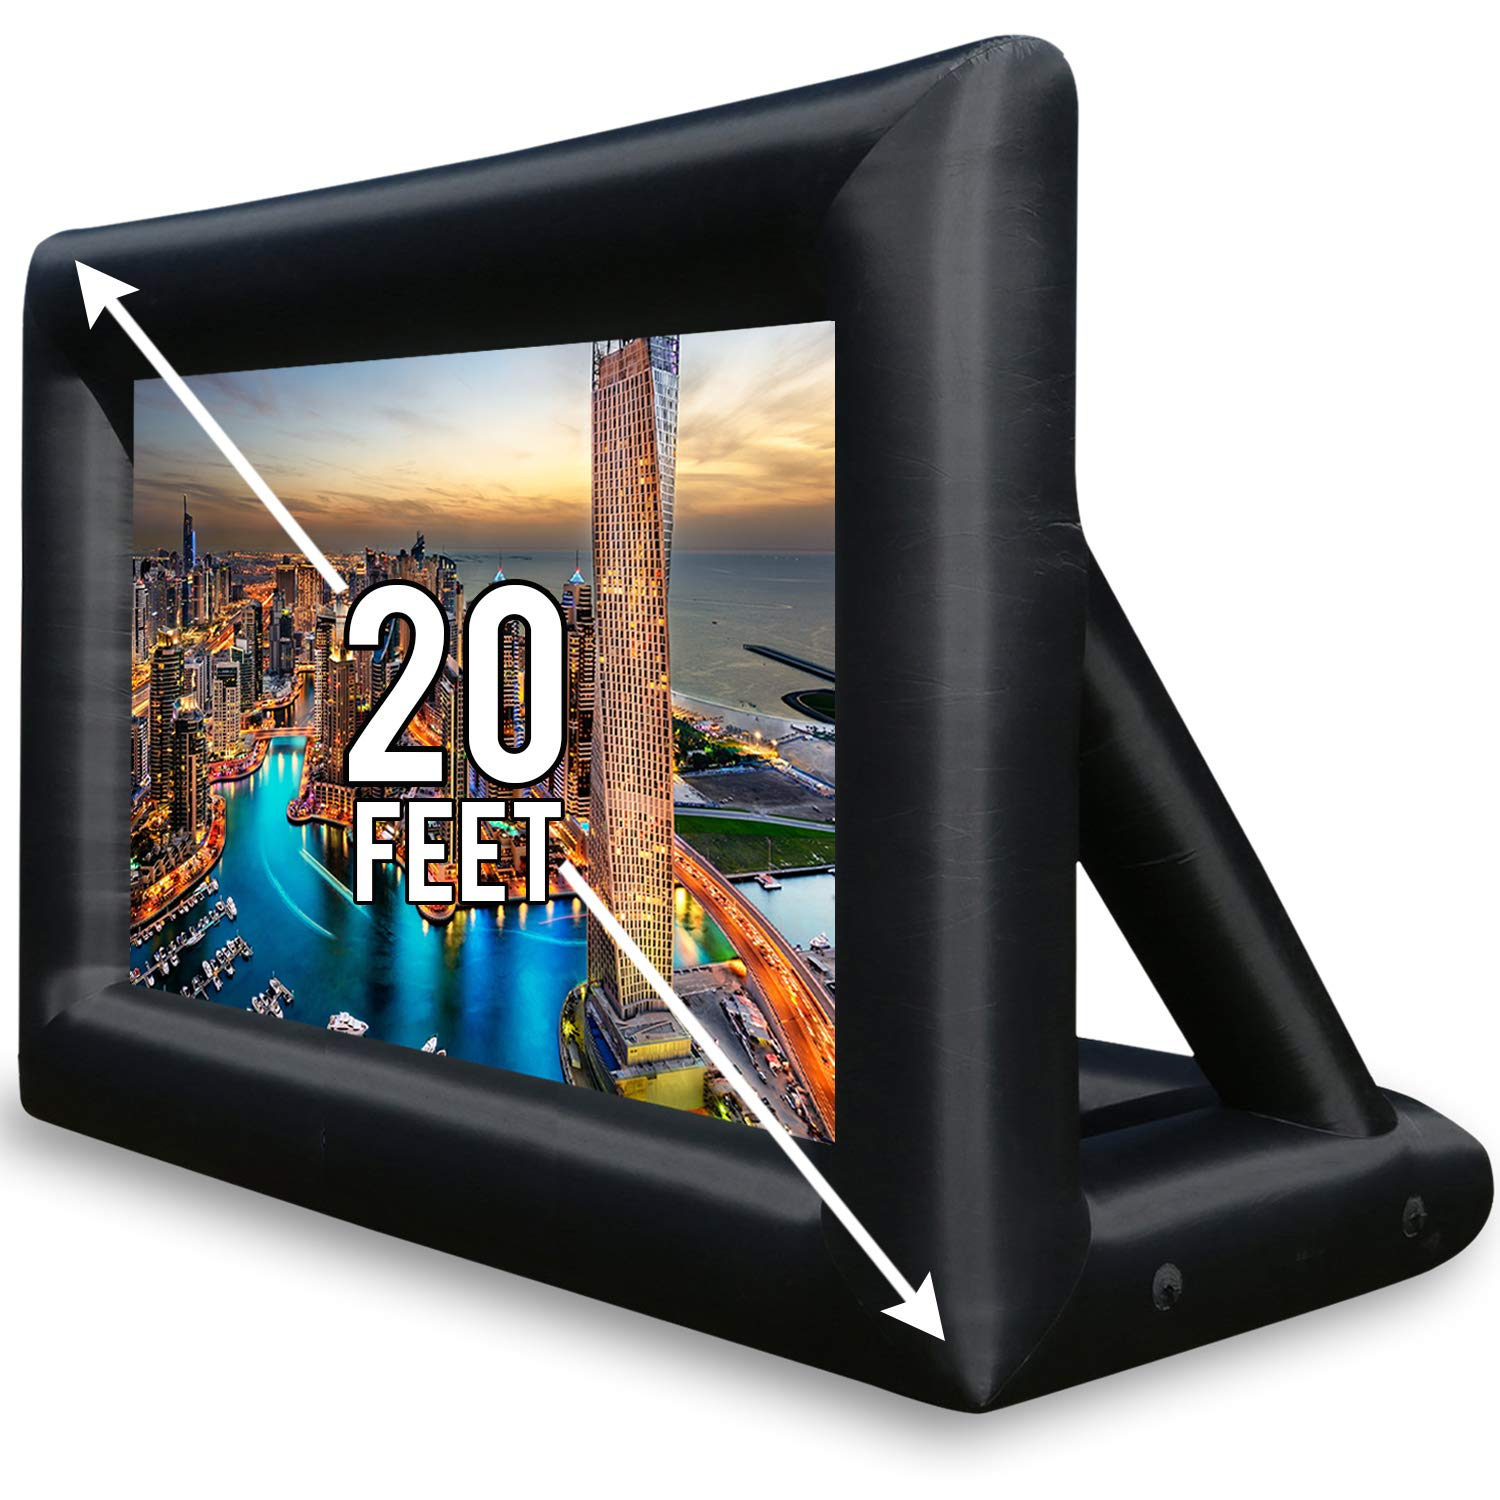 Jumbo Inflatable Screen Projector - 20 Feet